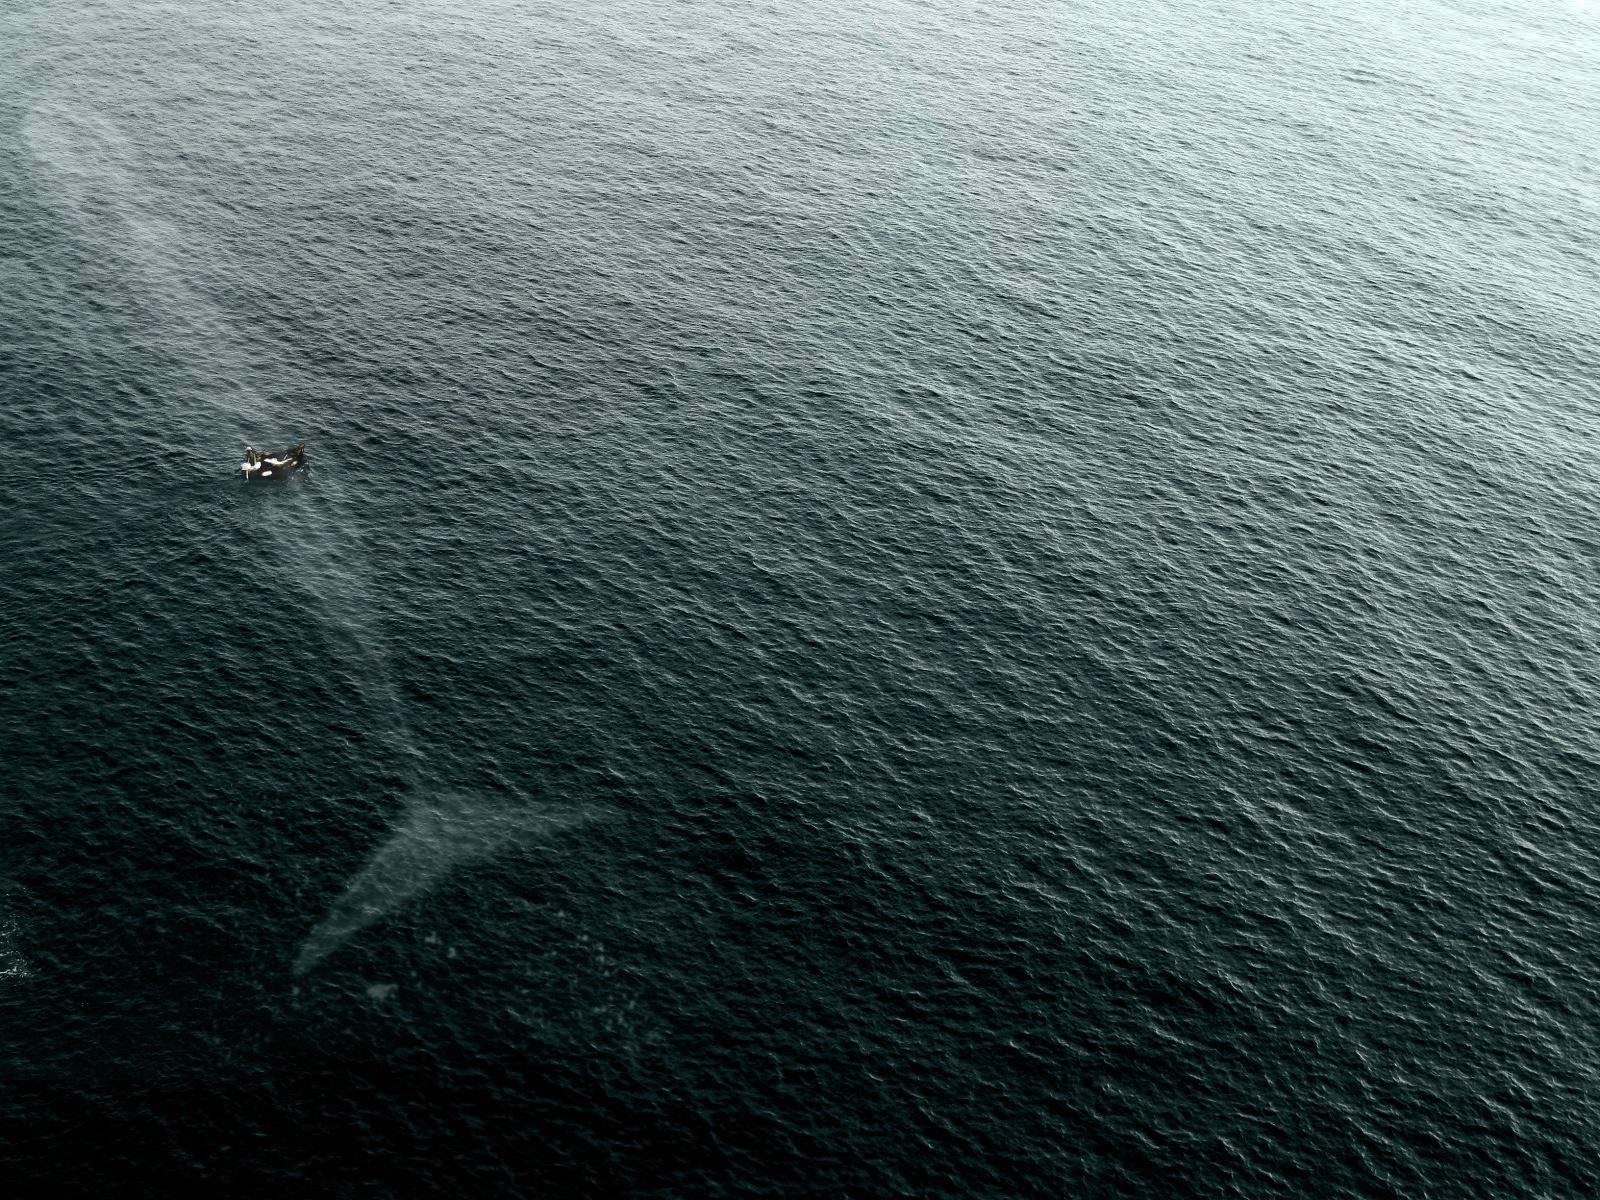 Why I'm scared of the ocean: http://t.co/sqcePrdYf3